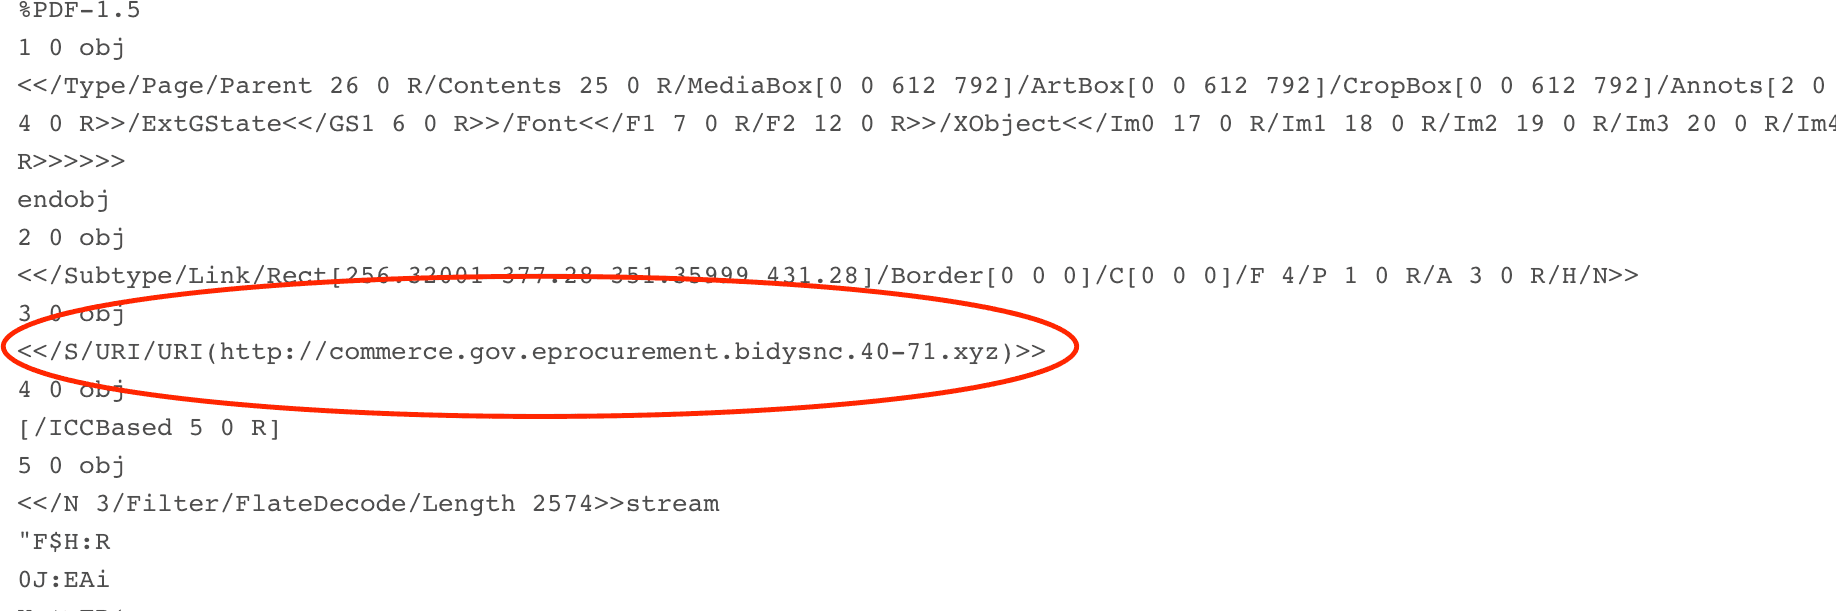 Embedded link in the pdf document lure spoofing the U.S. Department of Commerce